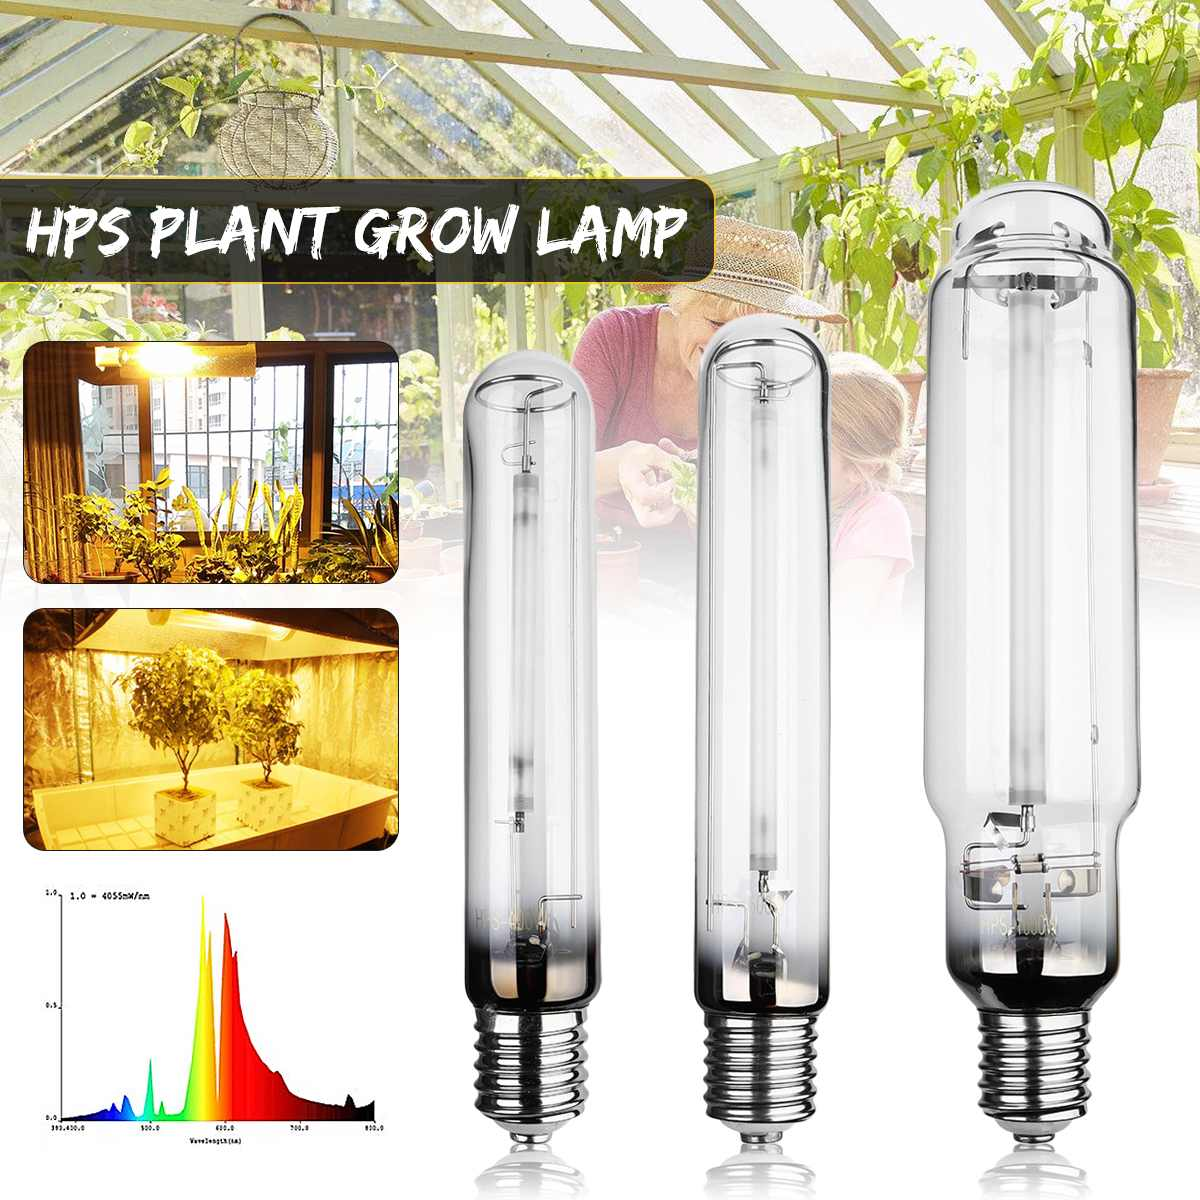 HPS Plant Grow Lamp E40 Grow Light Bulb Ballast For Sodium Bulb Indoor Plant Growing Lamps Higth Pressure 400/600W/1000W